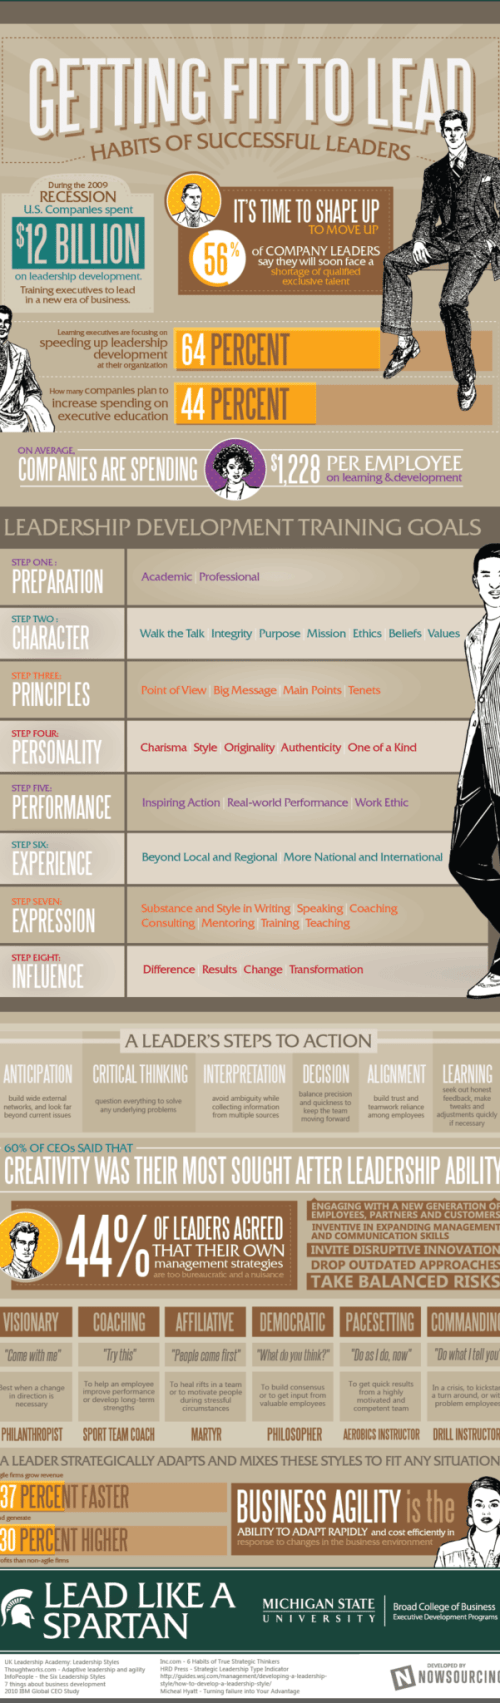 Habits of Successful Leaders